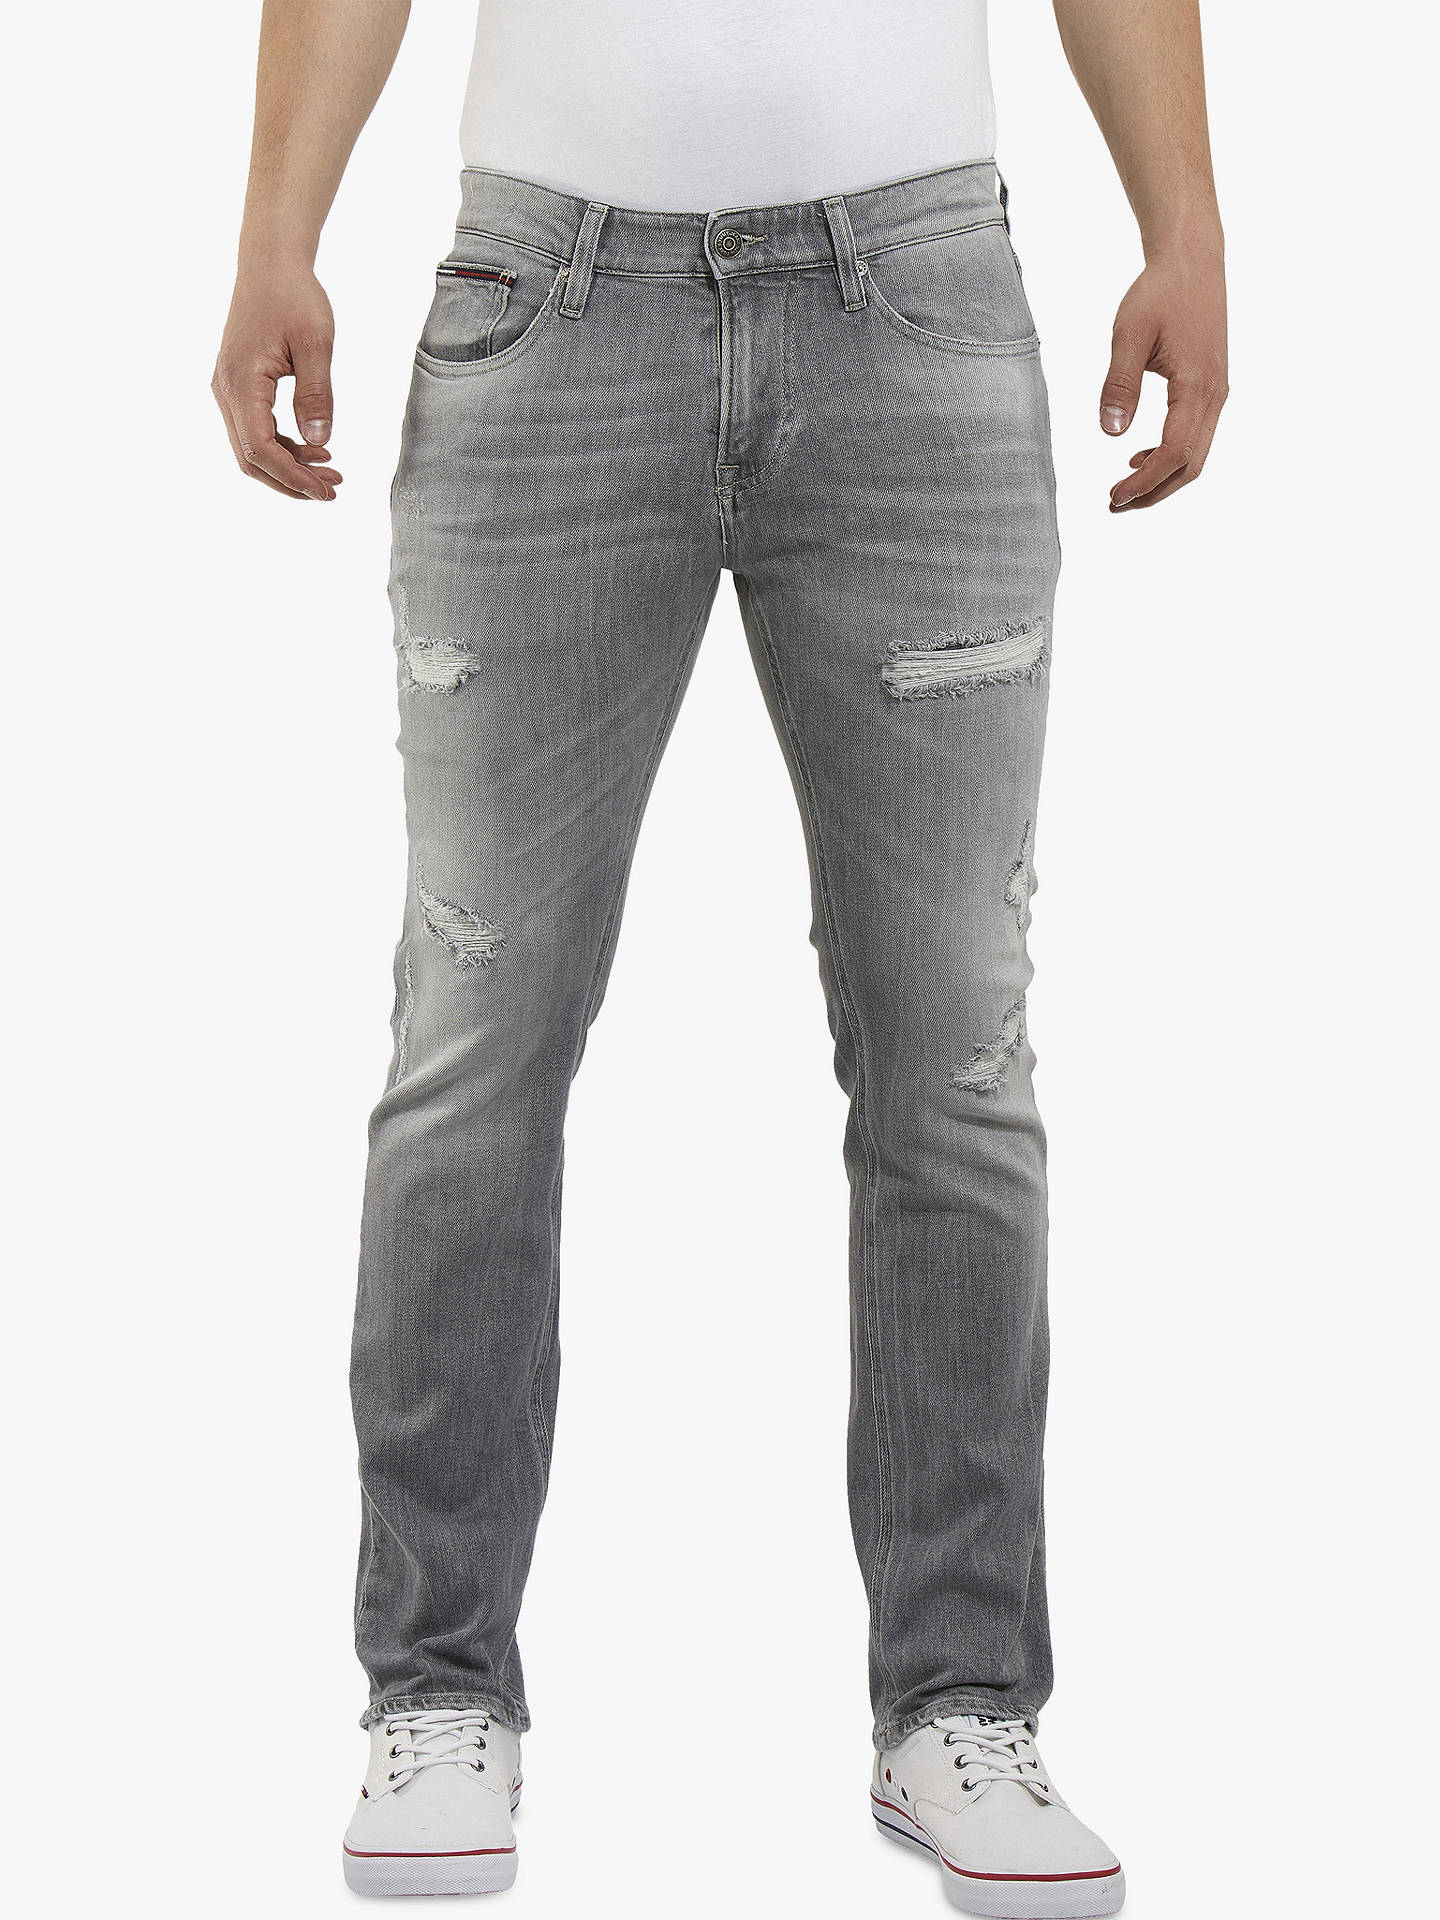 4a279a231 Buy Tommy Jeans Slim Scanton Jeans